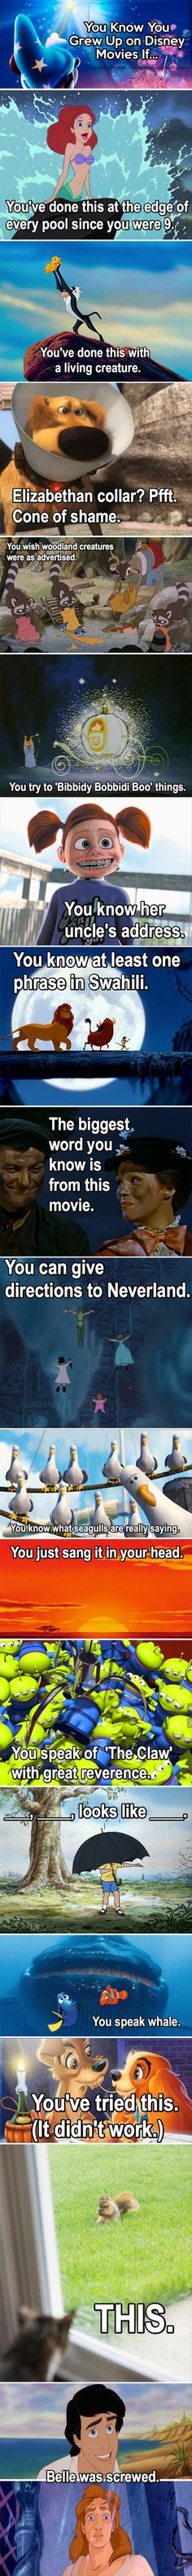 Disney in real life #disney